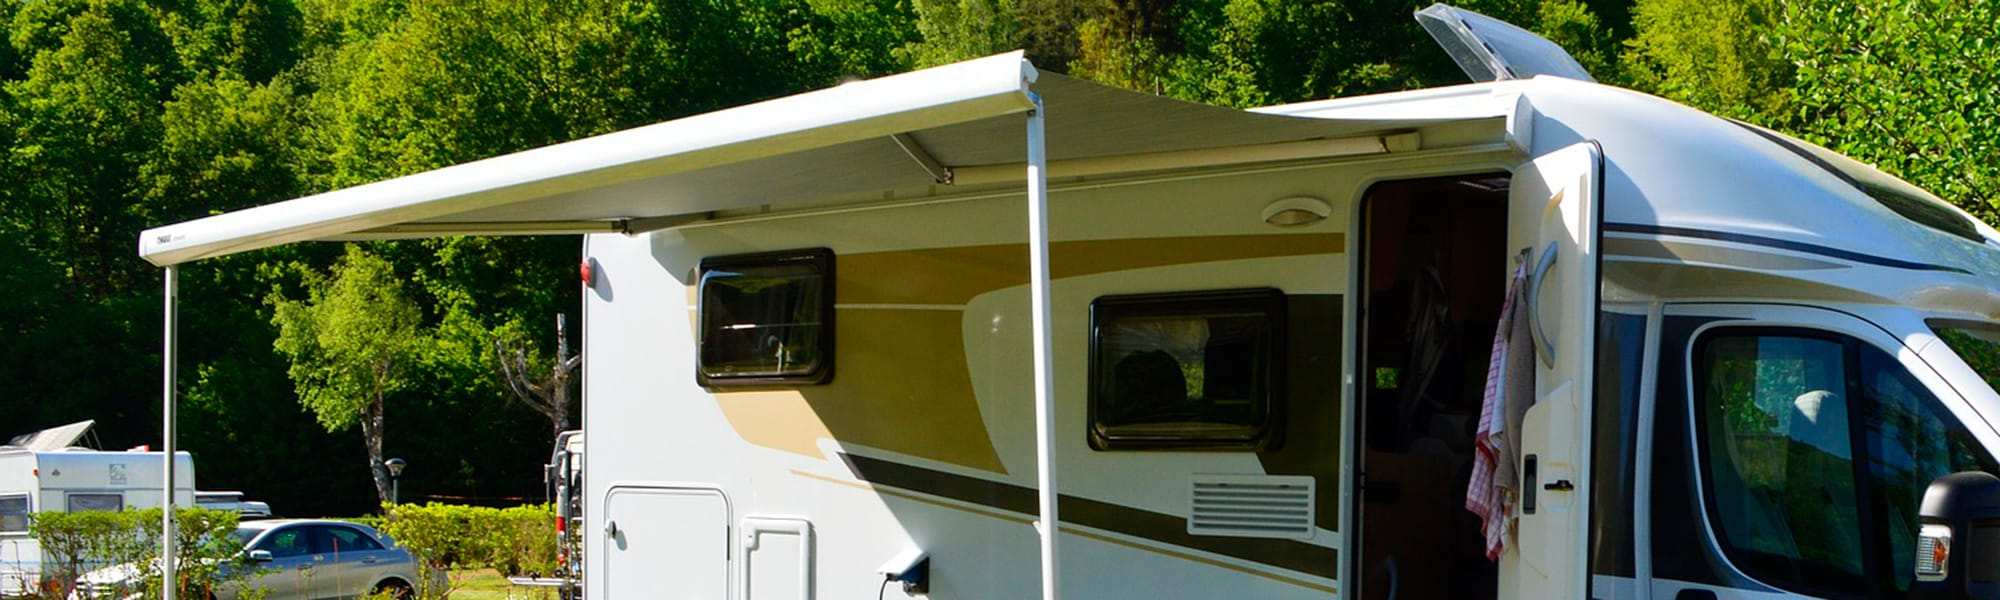 How To Measure and Replace Trailer or RV Awning Fabric